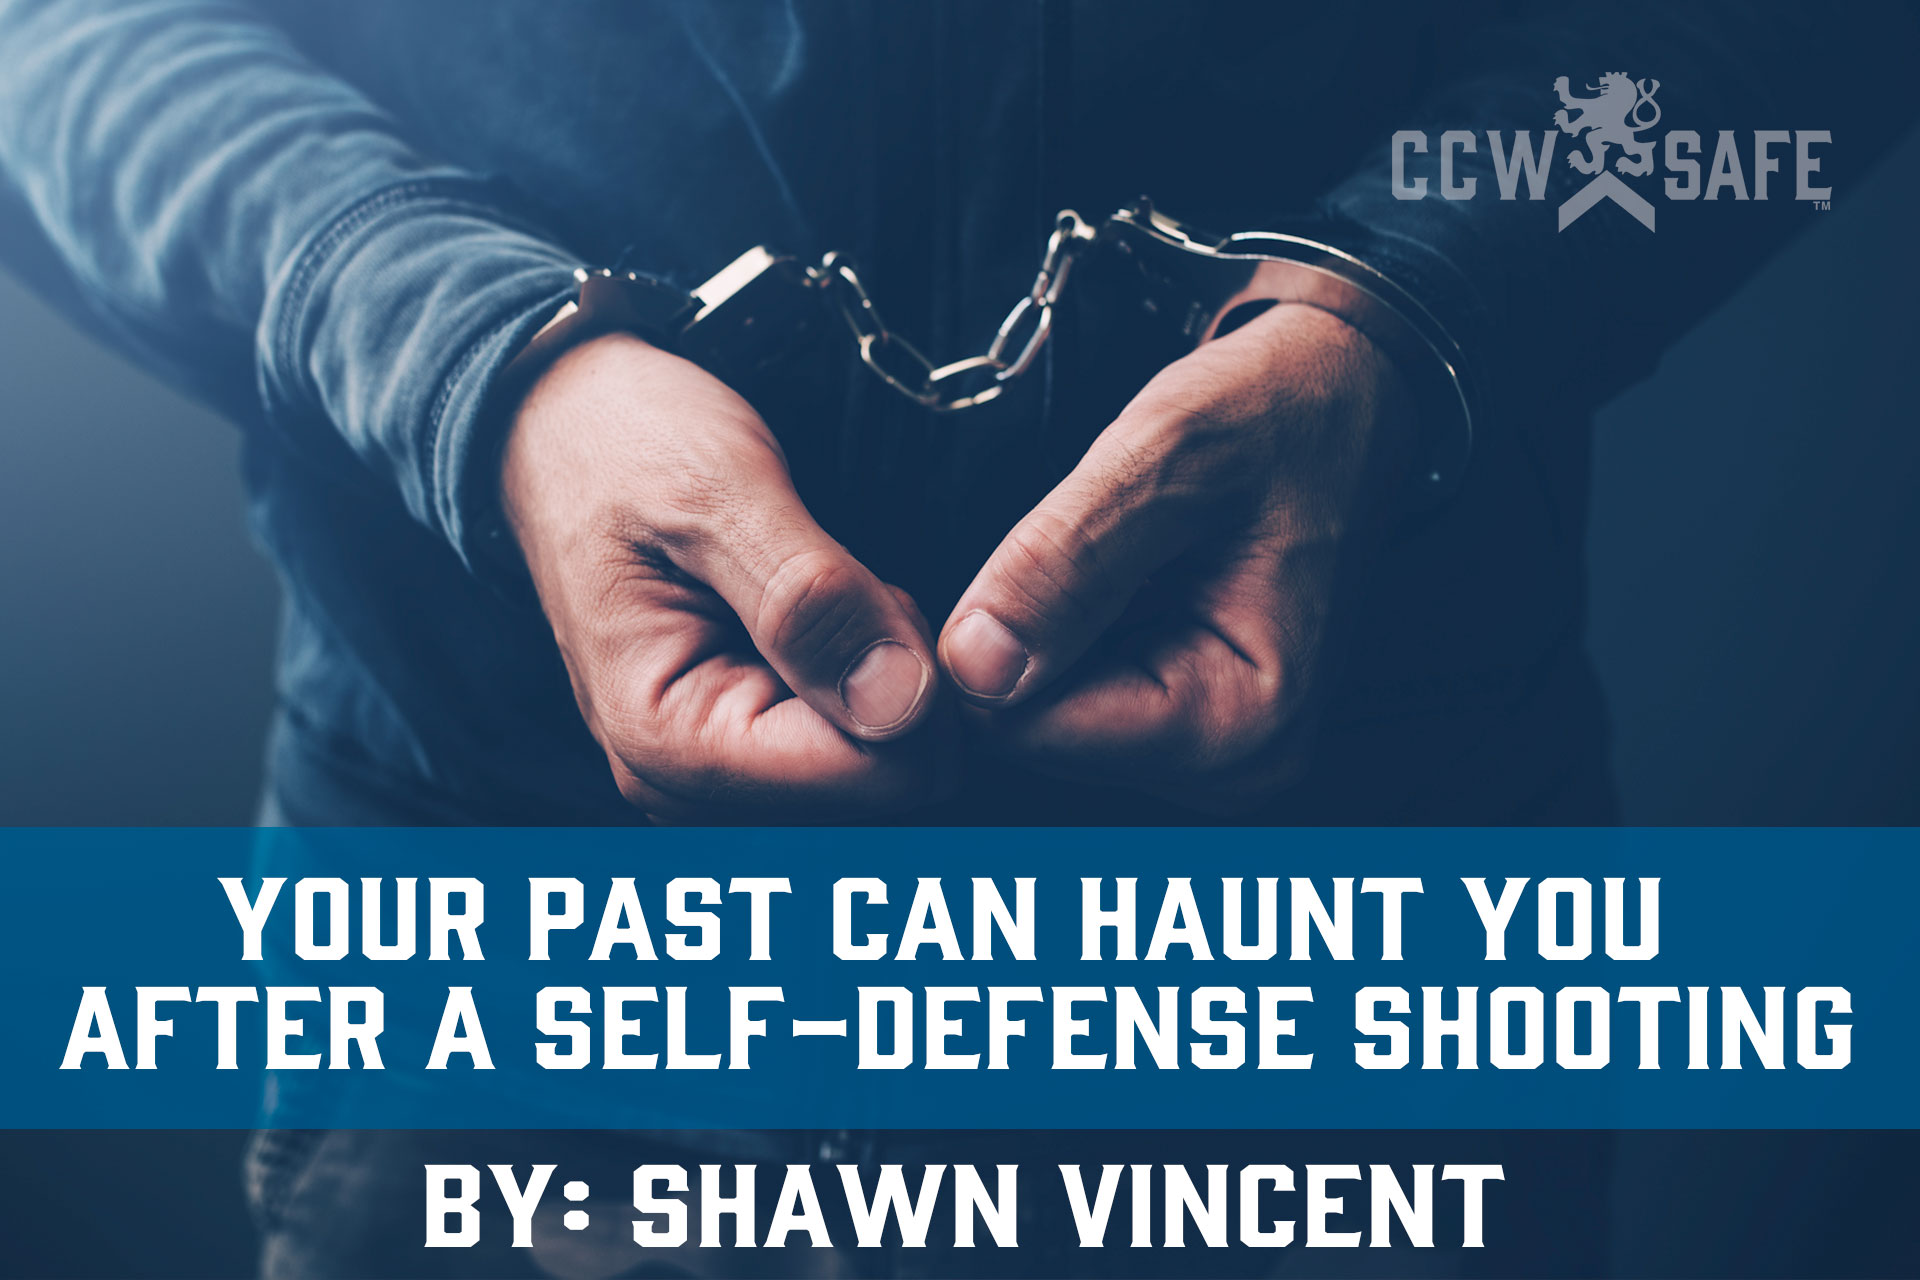 Your Past Can Haunt You After a Self-Defense Shooting